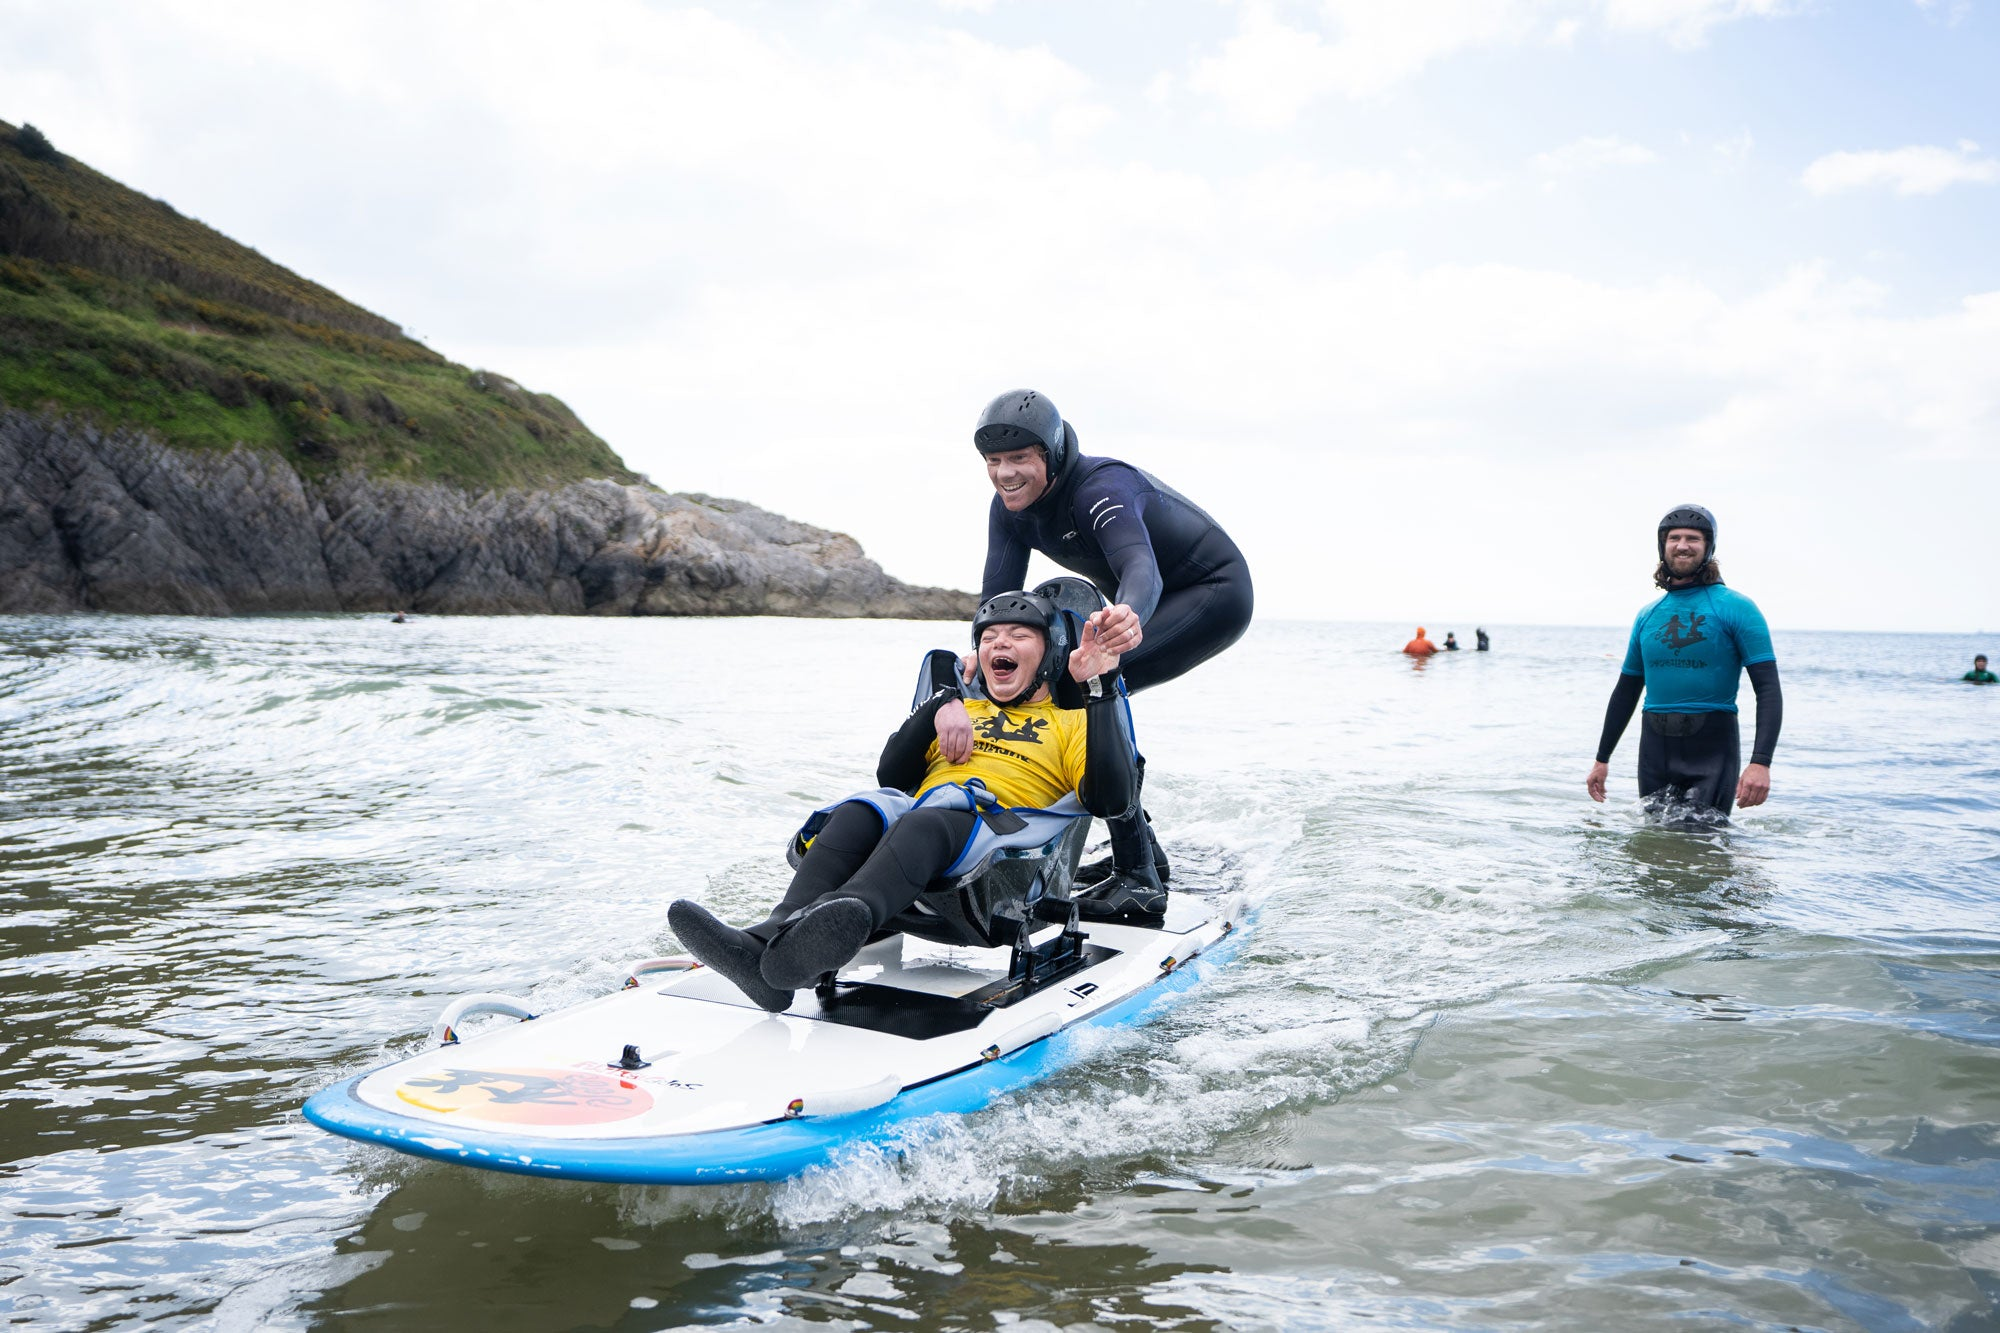 Sam-Bleakley-adaptive-surfing-with-Kai-Lewis